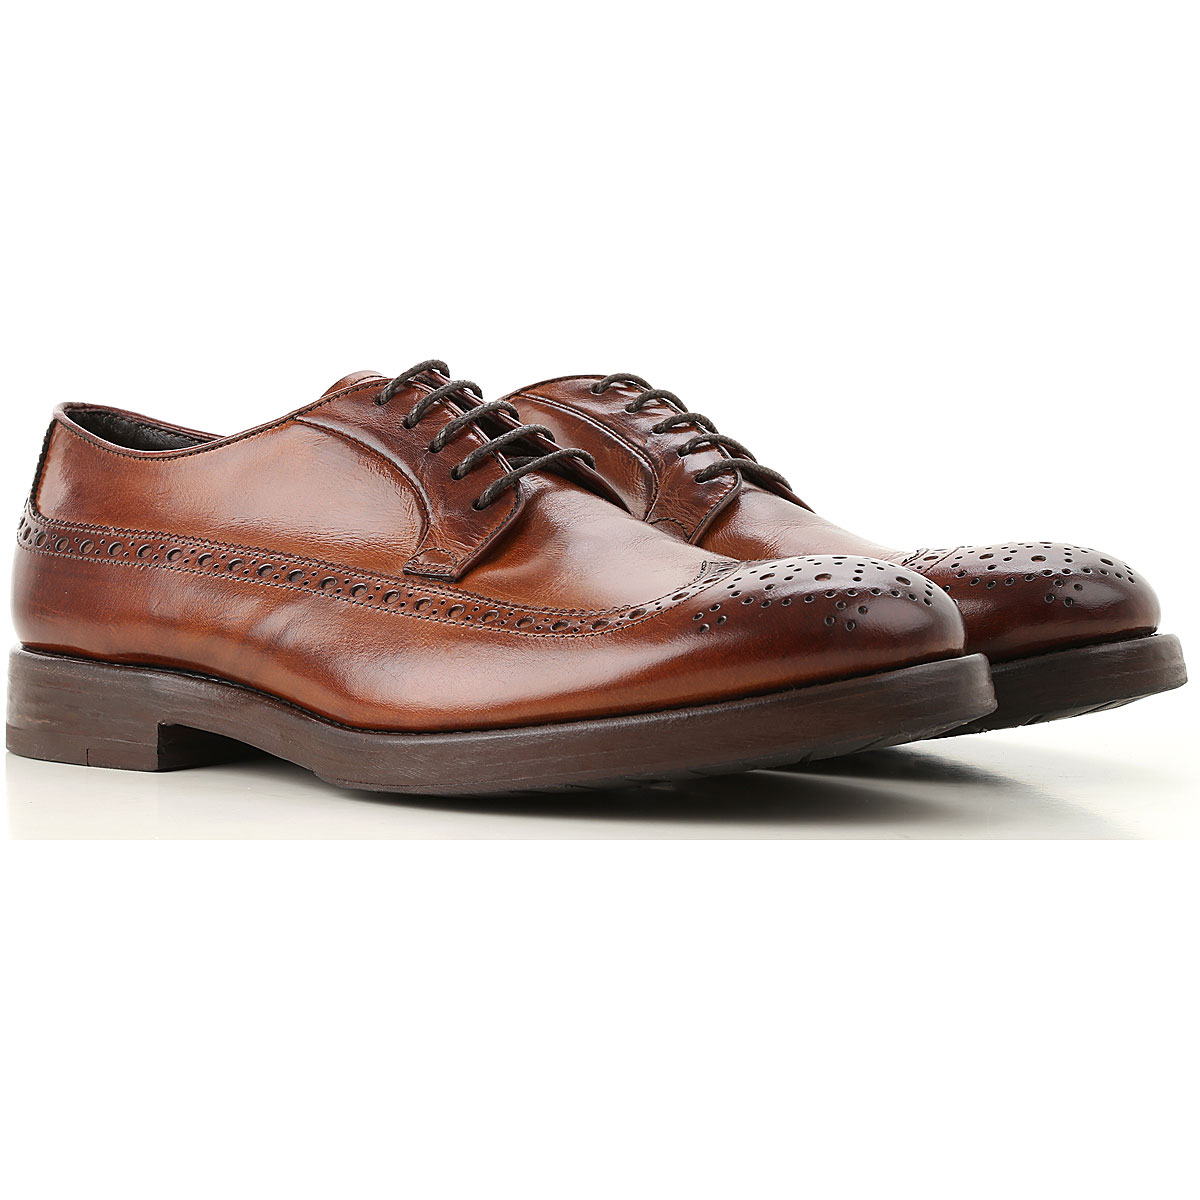 Image of Henderson Lace Up Shoes for Men Oxfords, Derbies and Brogues, Brown, Leather, 2017, 10 10.5 11 11.5 12 8 8.5 9 9.5